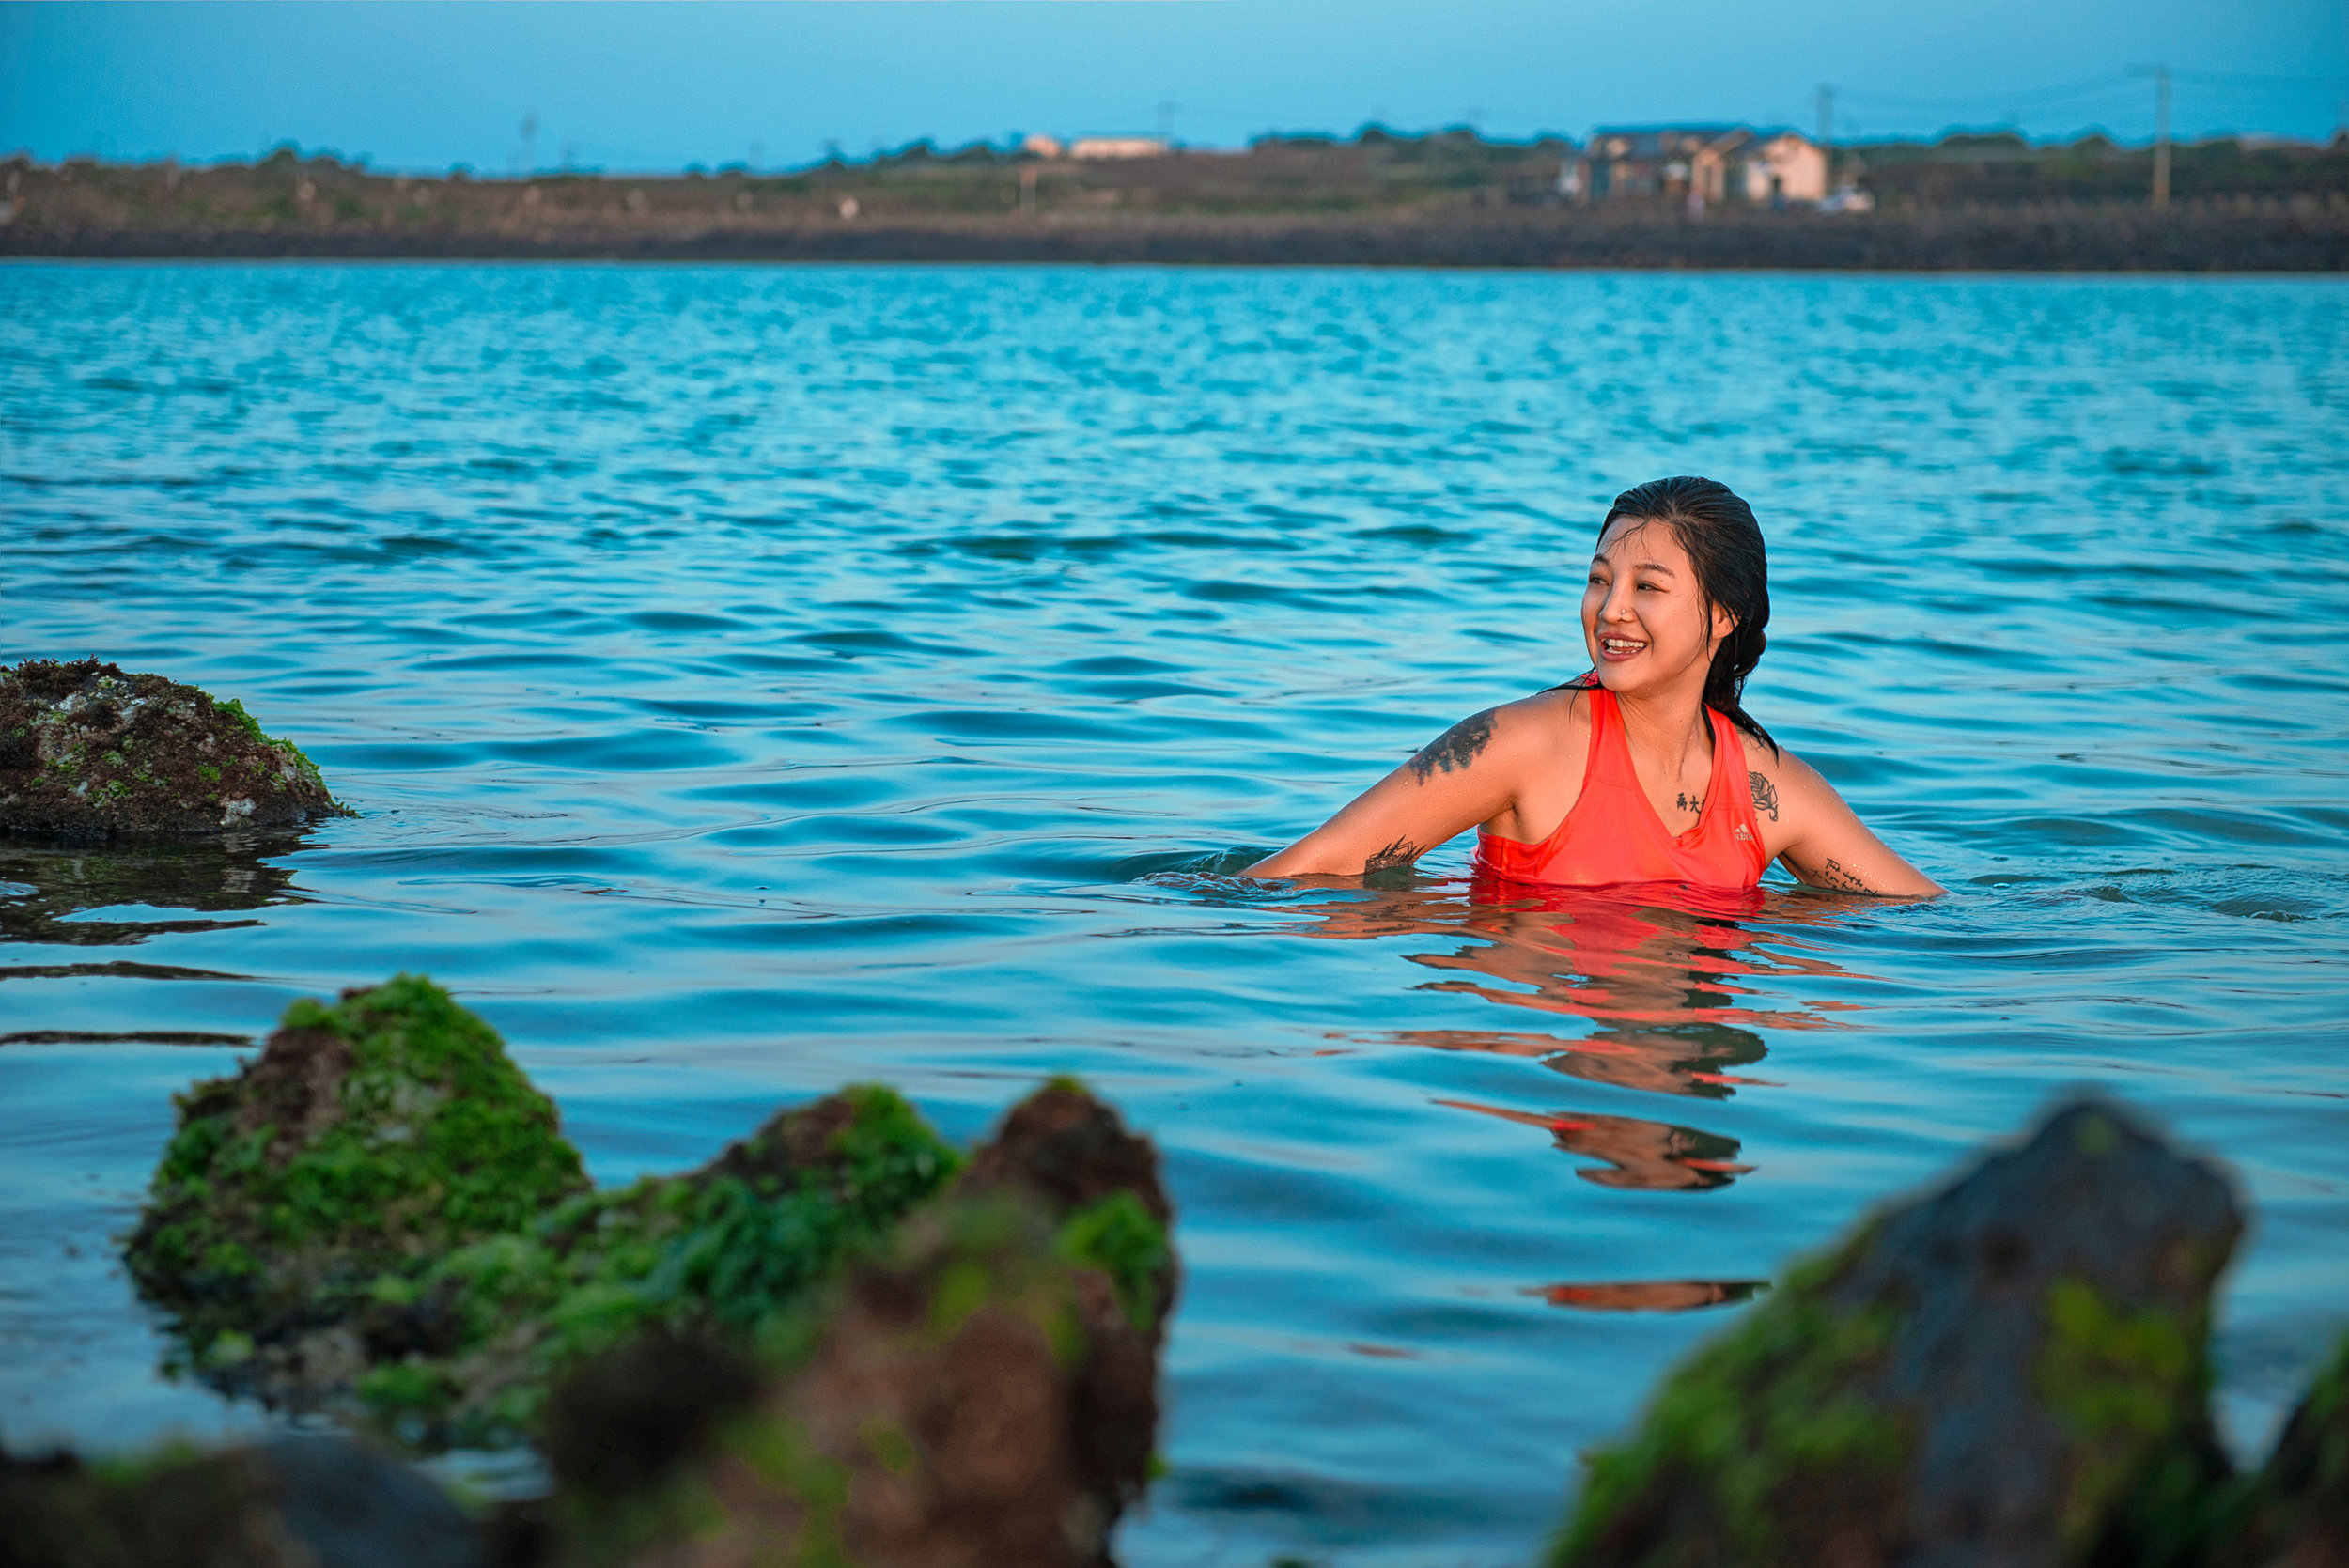 Sanga swimming at golden hour. She came from Paju, South Korea to work on Udo Island.